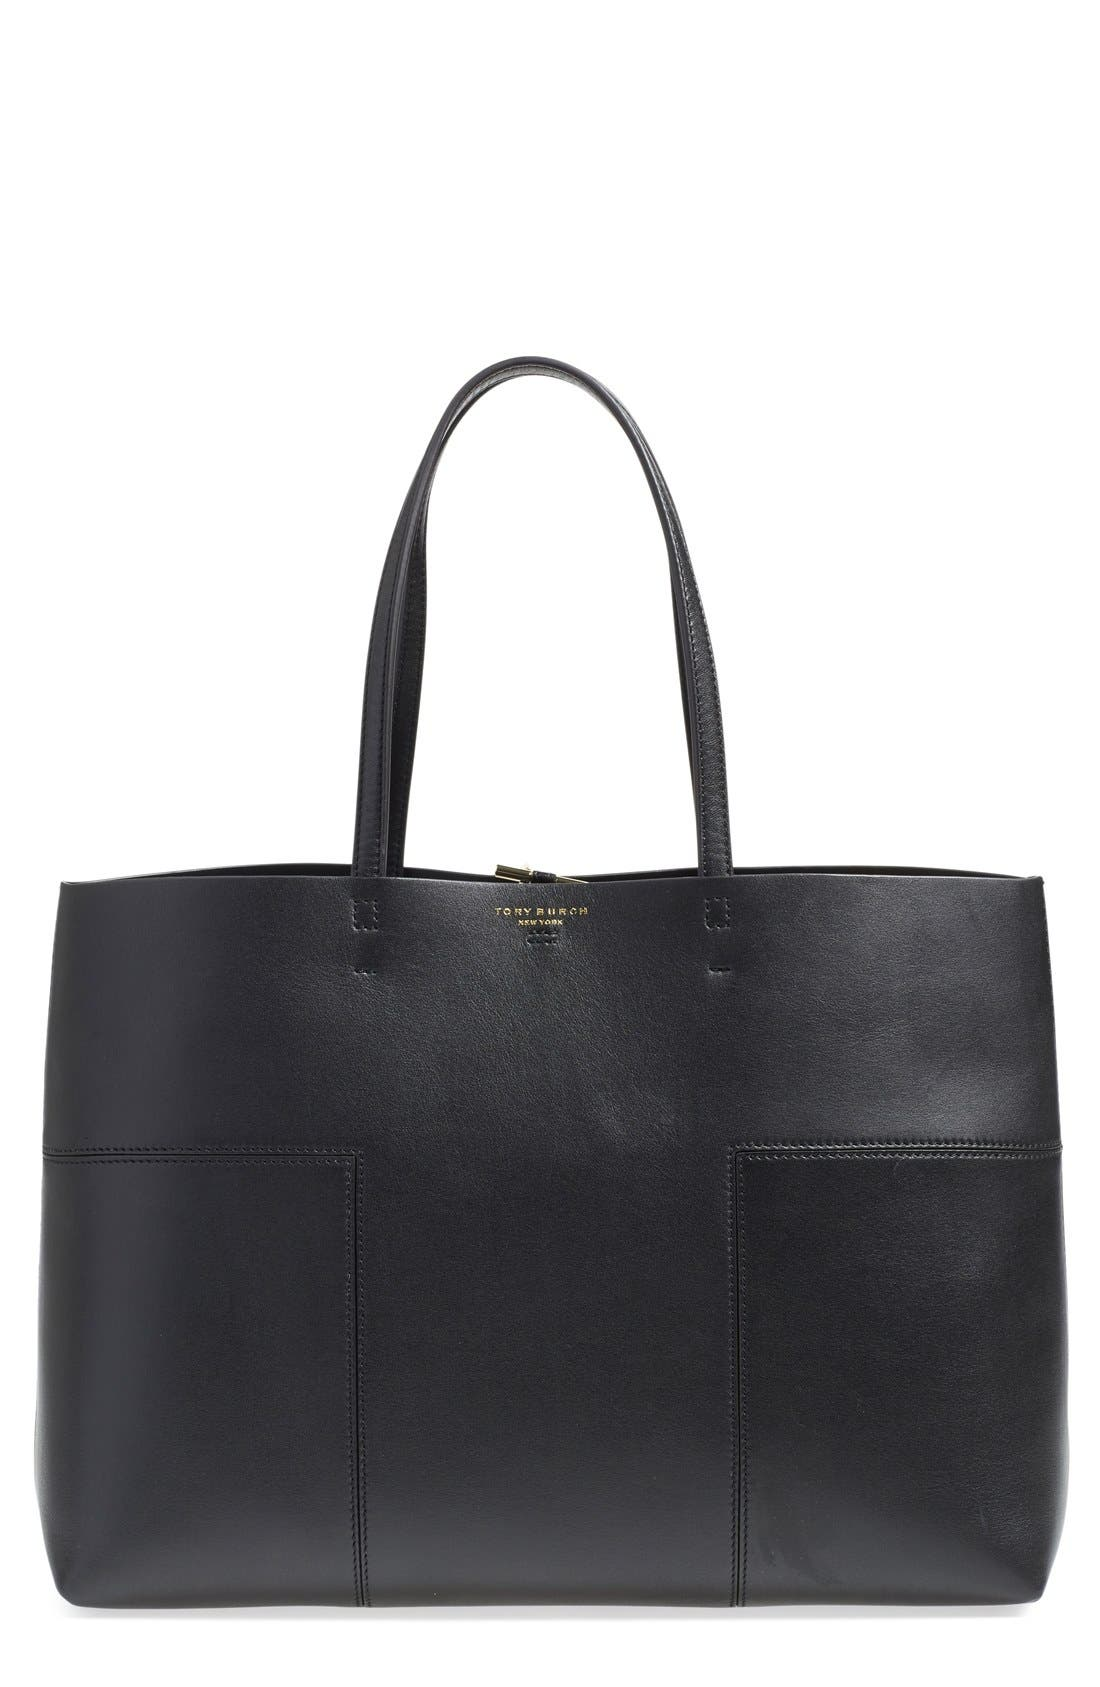 Alternate Image 1 Selected - Tory Burch 'Block-T' Leather Tote